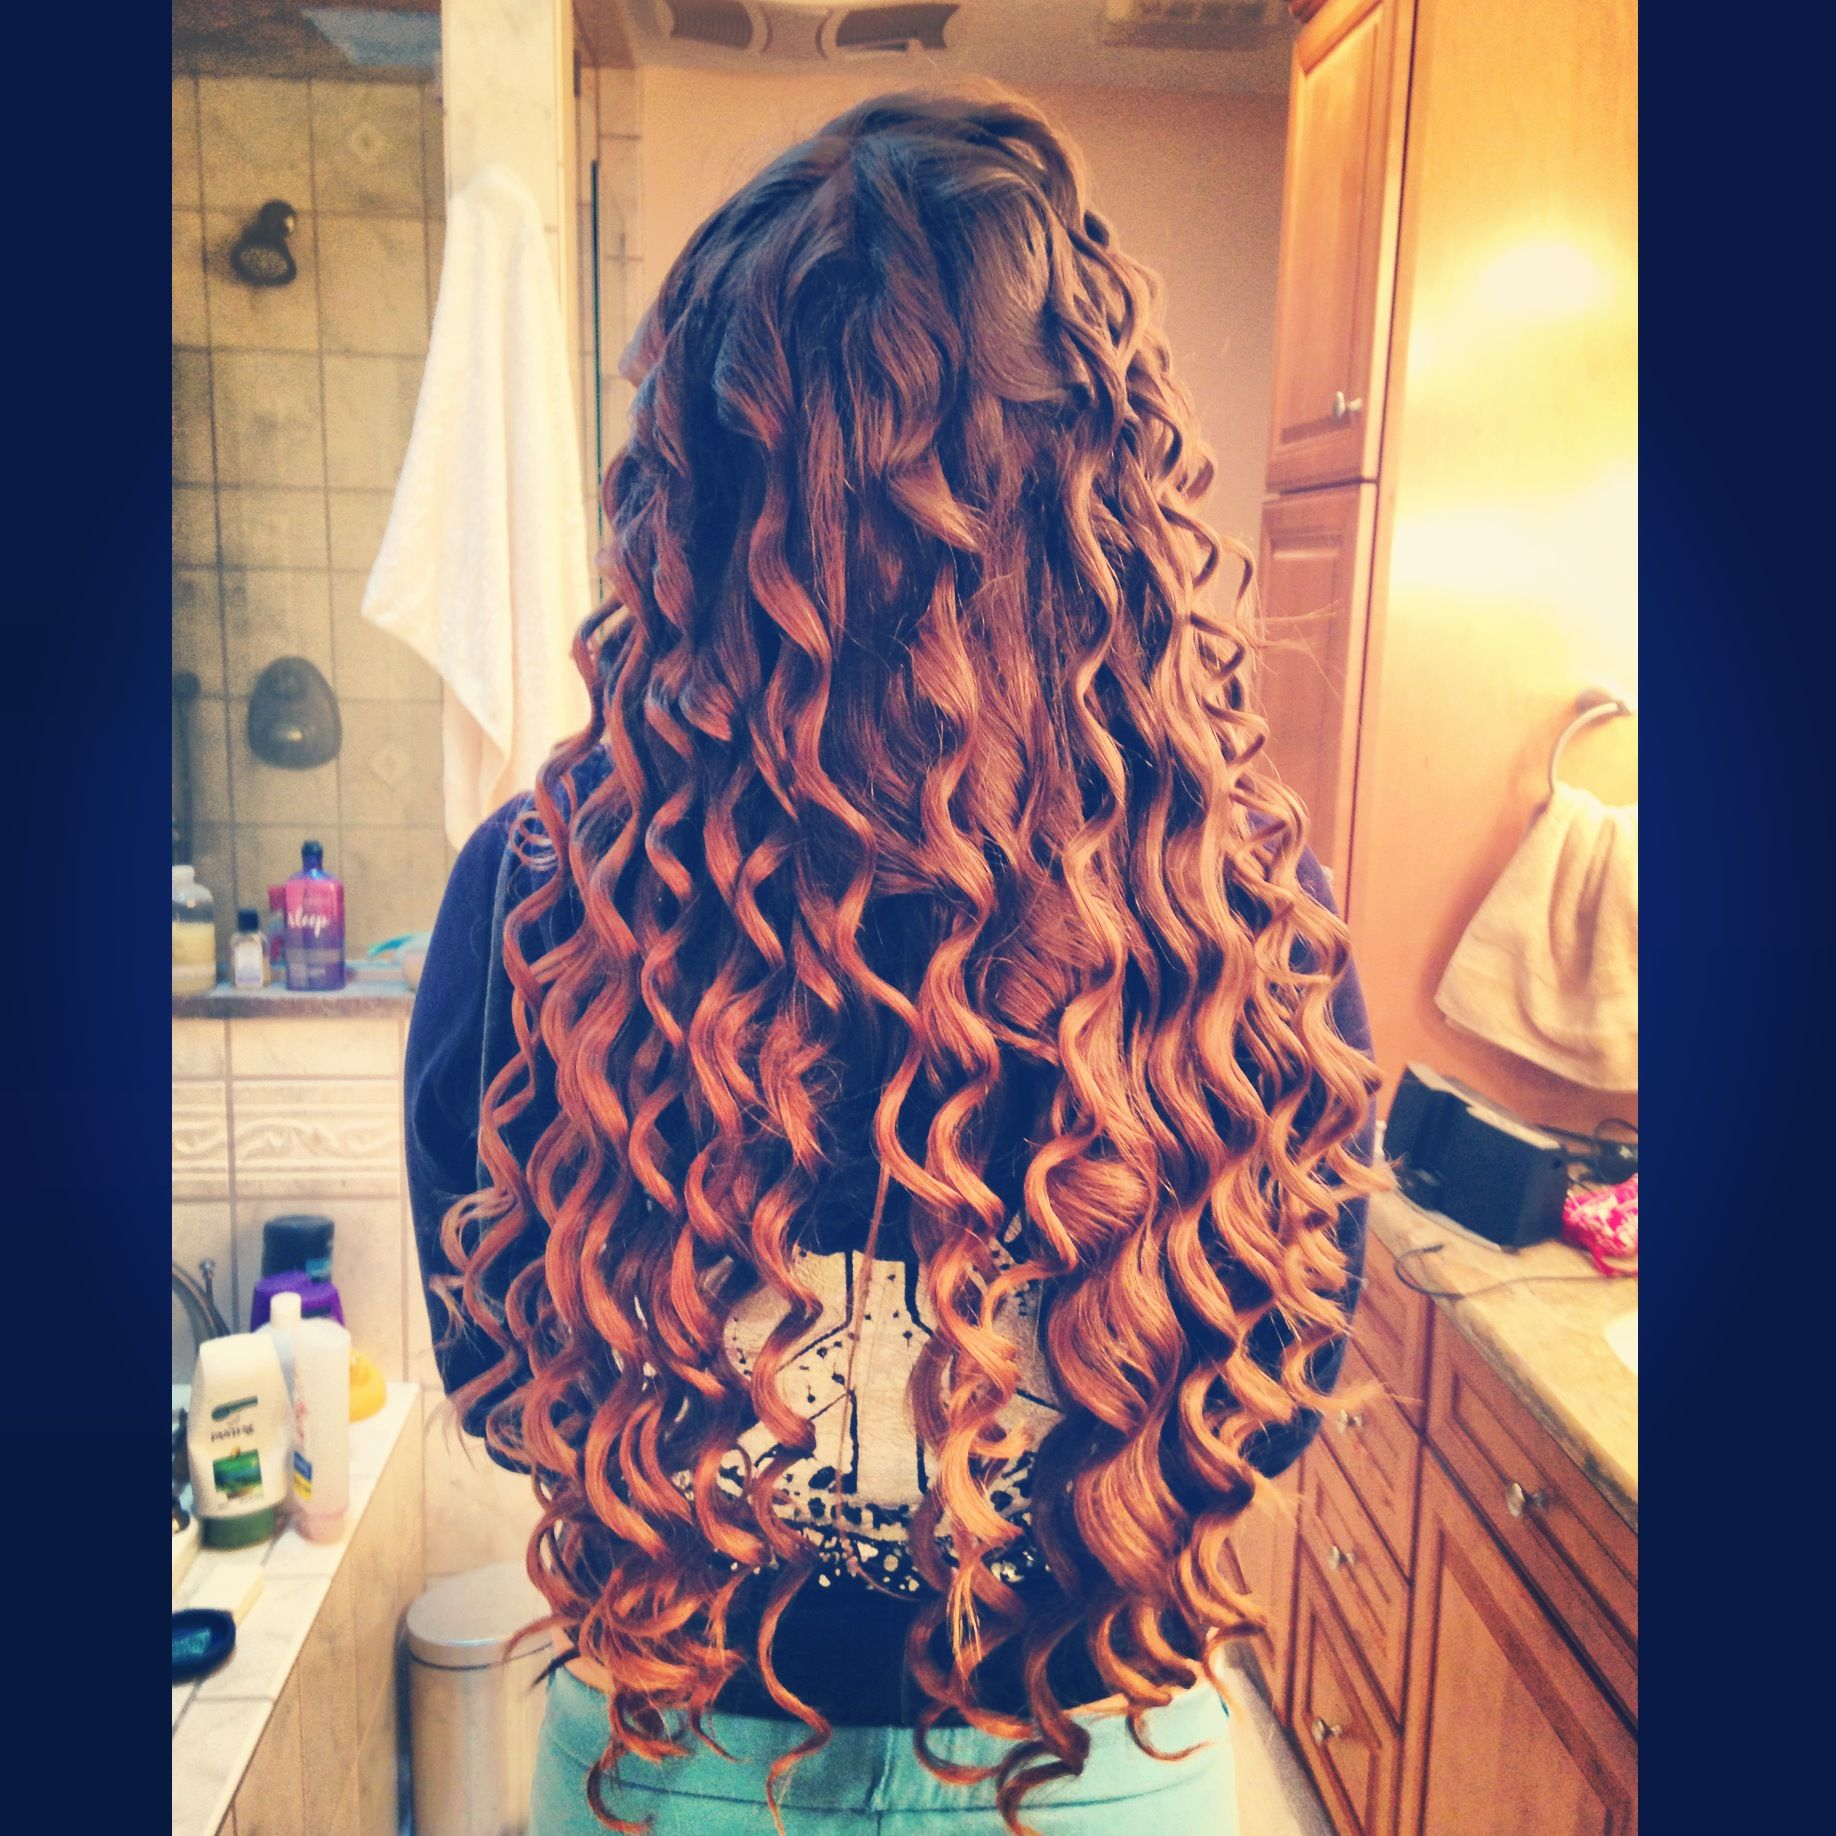 Curls tumblr hair ombre kinda beautiful long hair hair